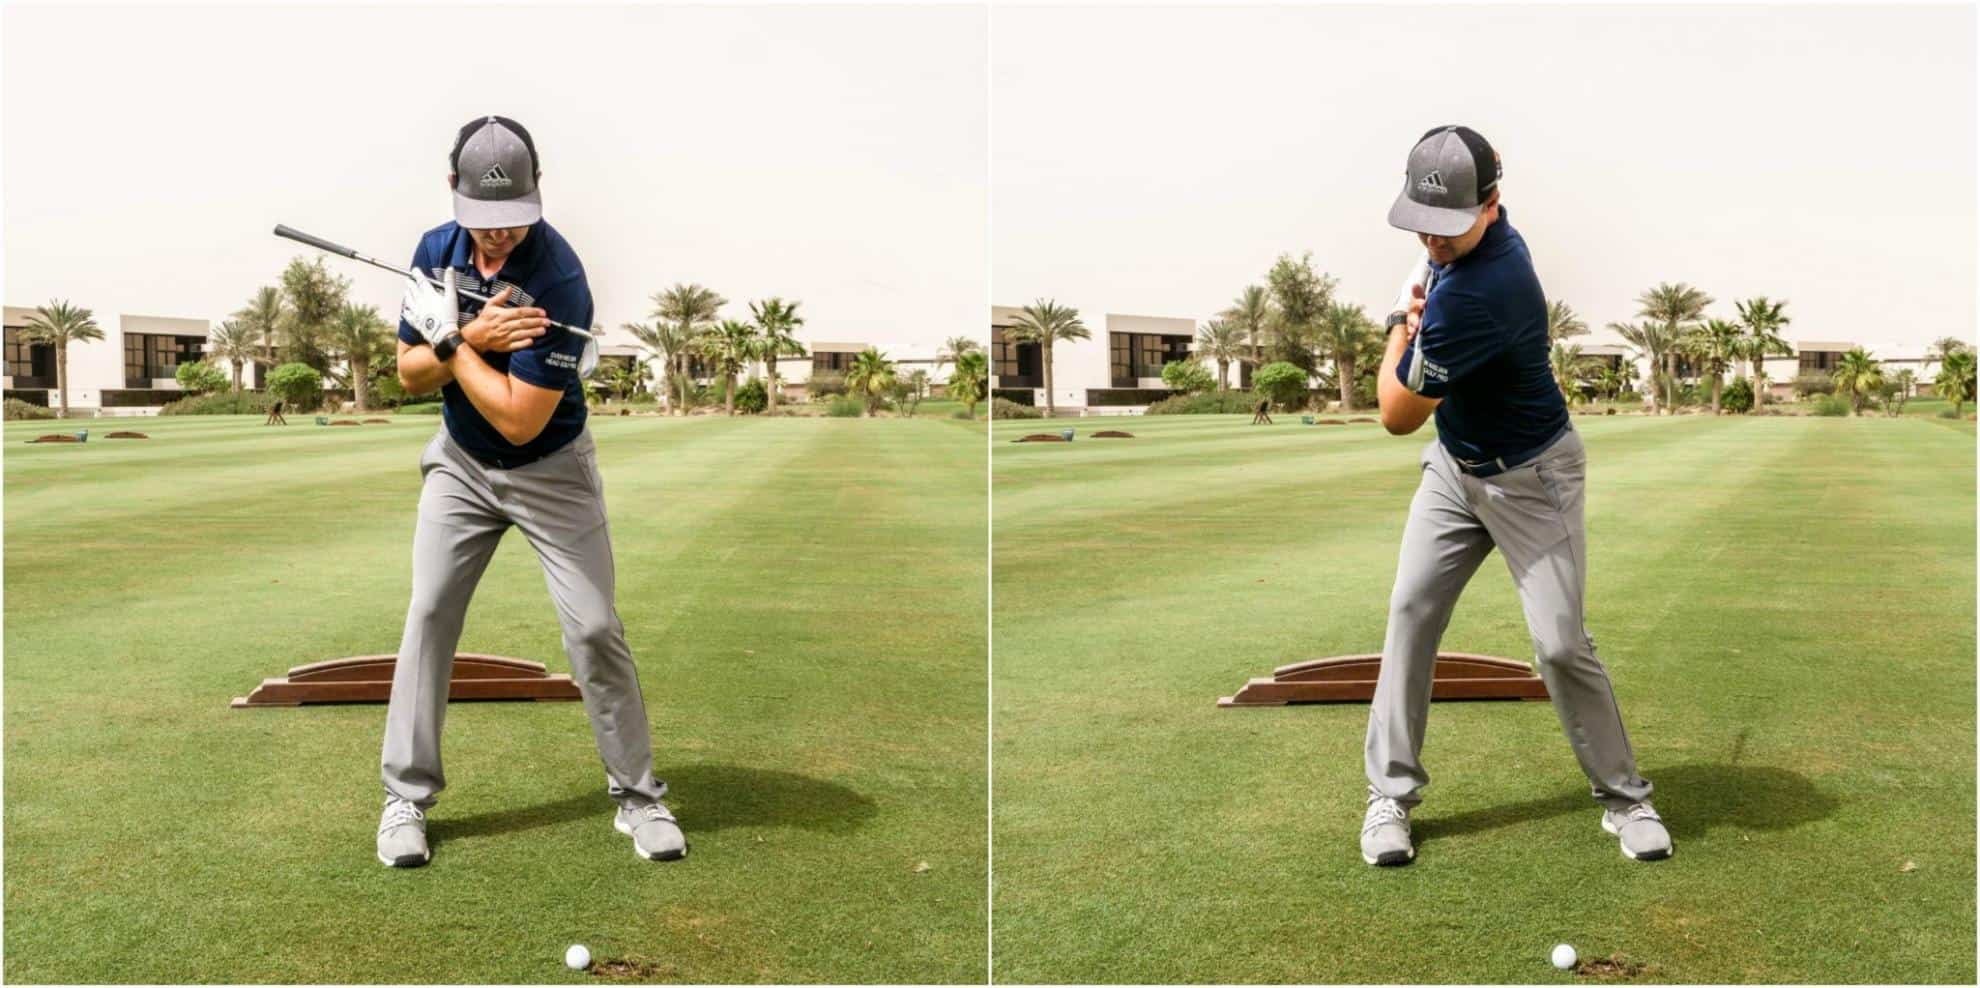 Unlock the power in your golf swing